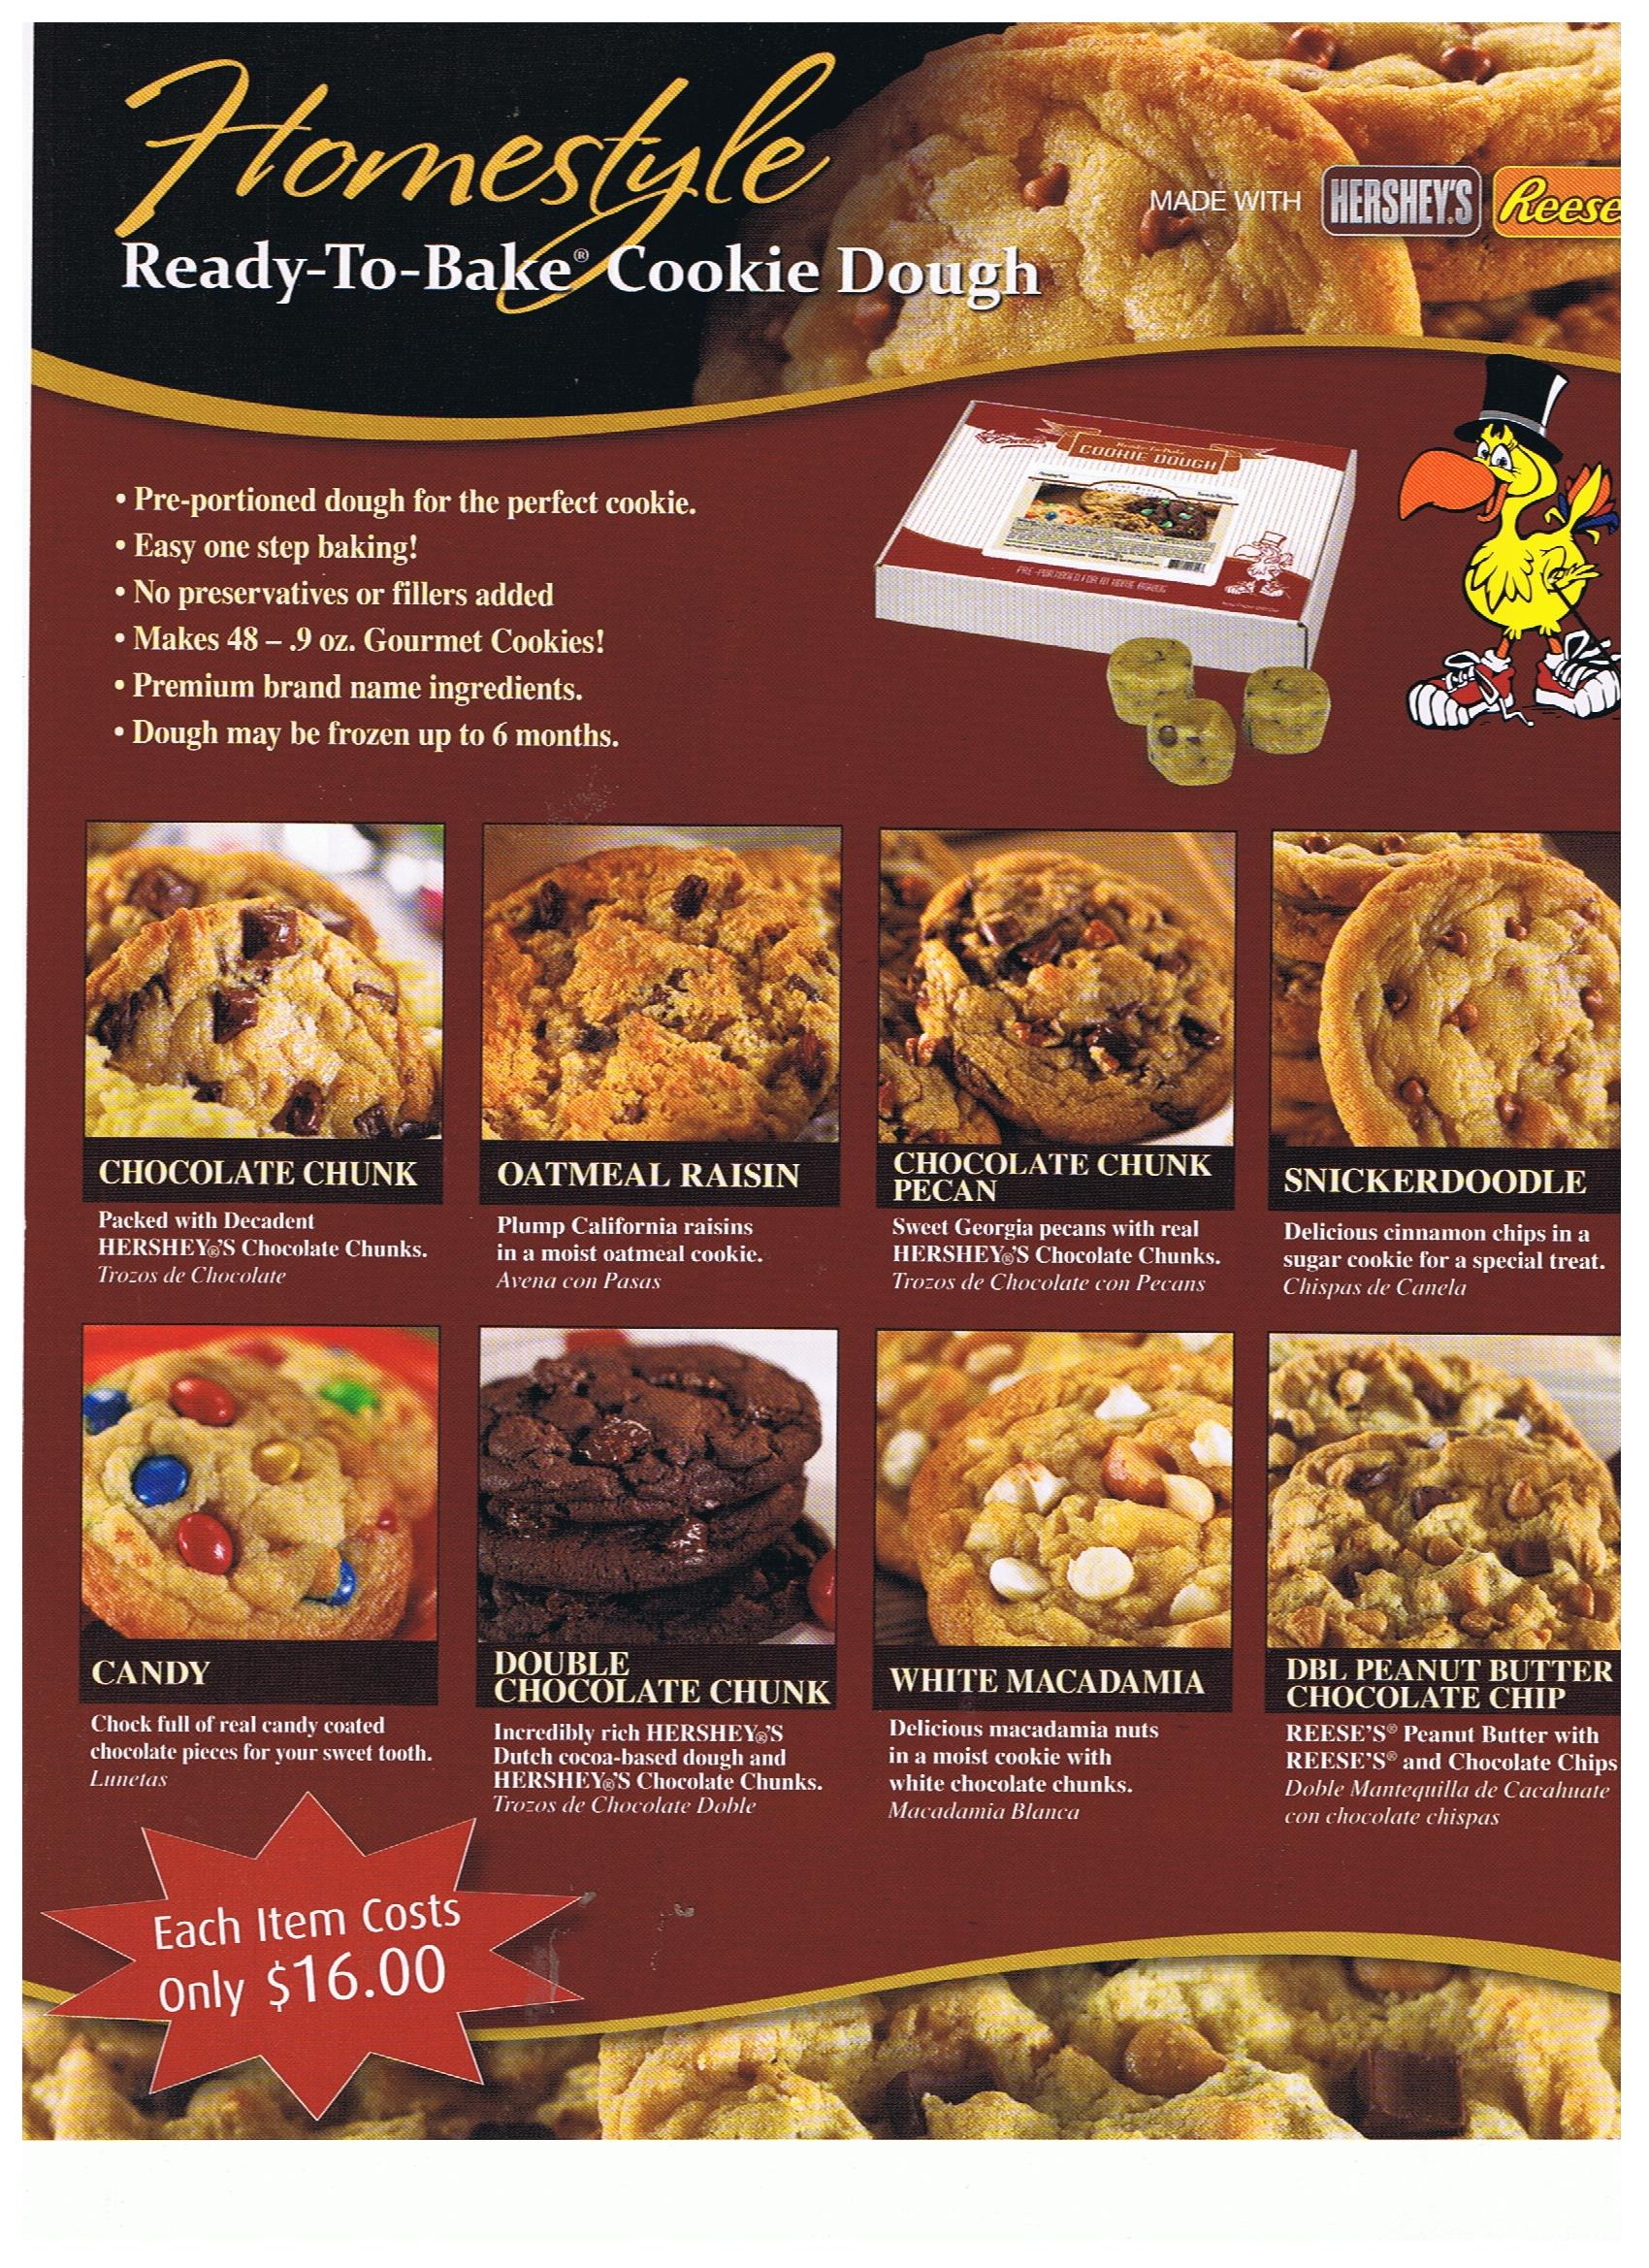 Cookie_Dough_Front Scout Cookie Order Form Pa on girl scout order form, pa girl scout cookie form, crazy about cookies order form, scout permission slips, girl scouts cookie permission form, girl scout cookie pick up form, printable girl scout cookie form, girl scout cookie receipt form,